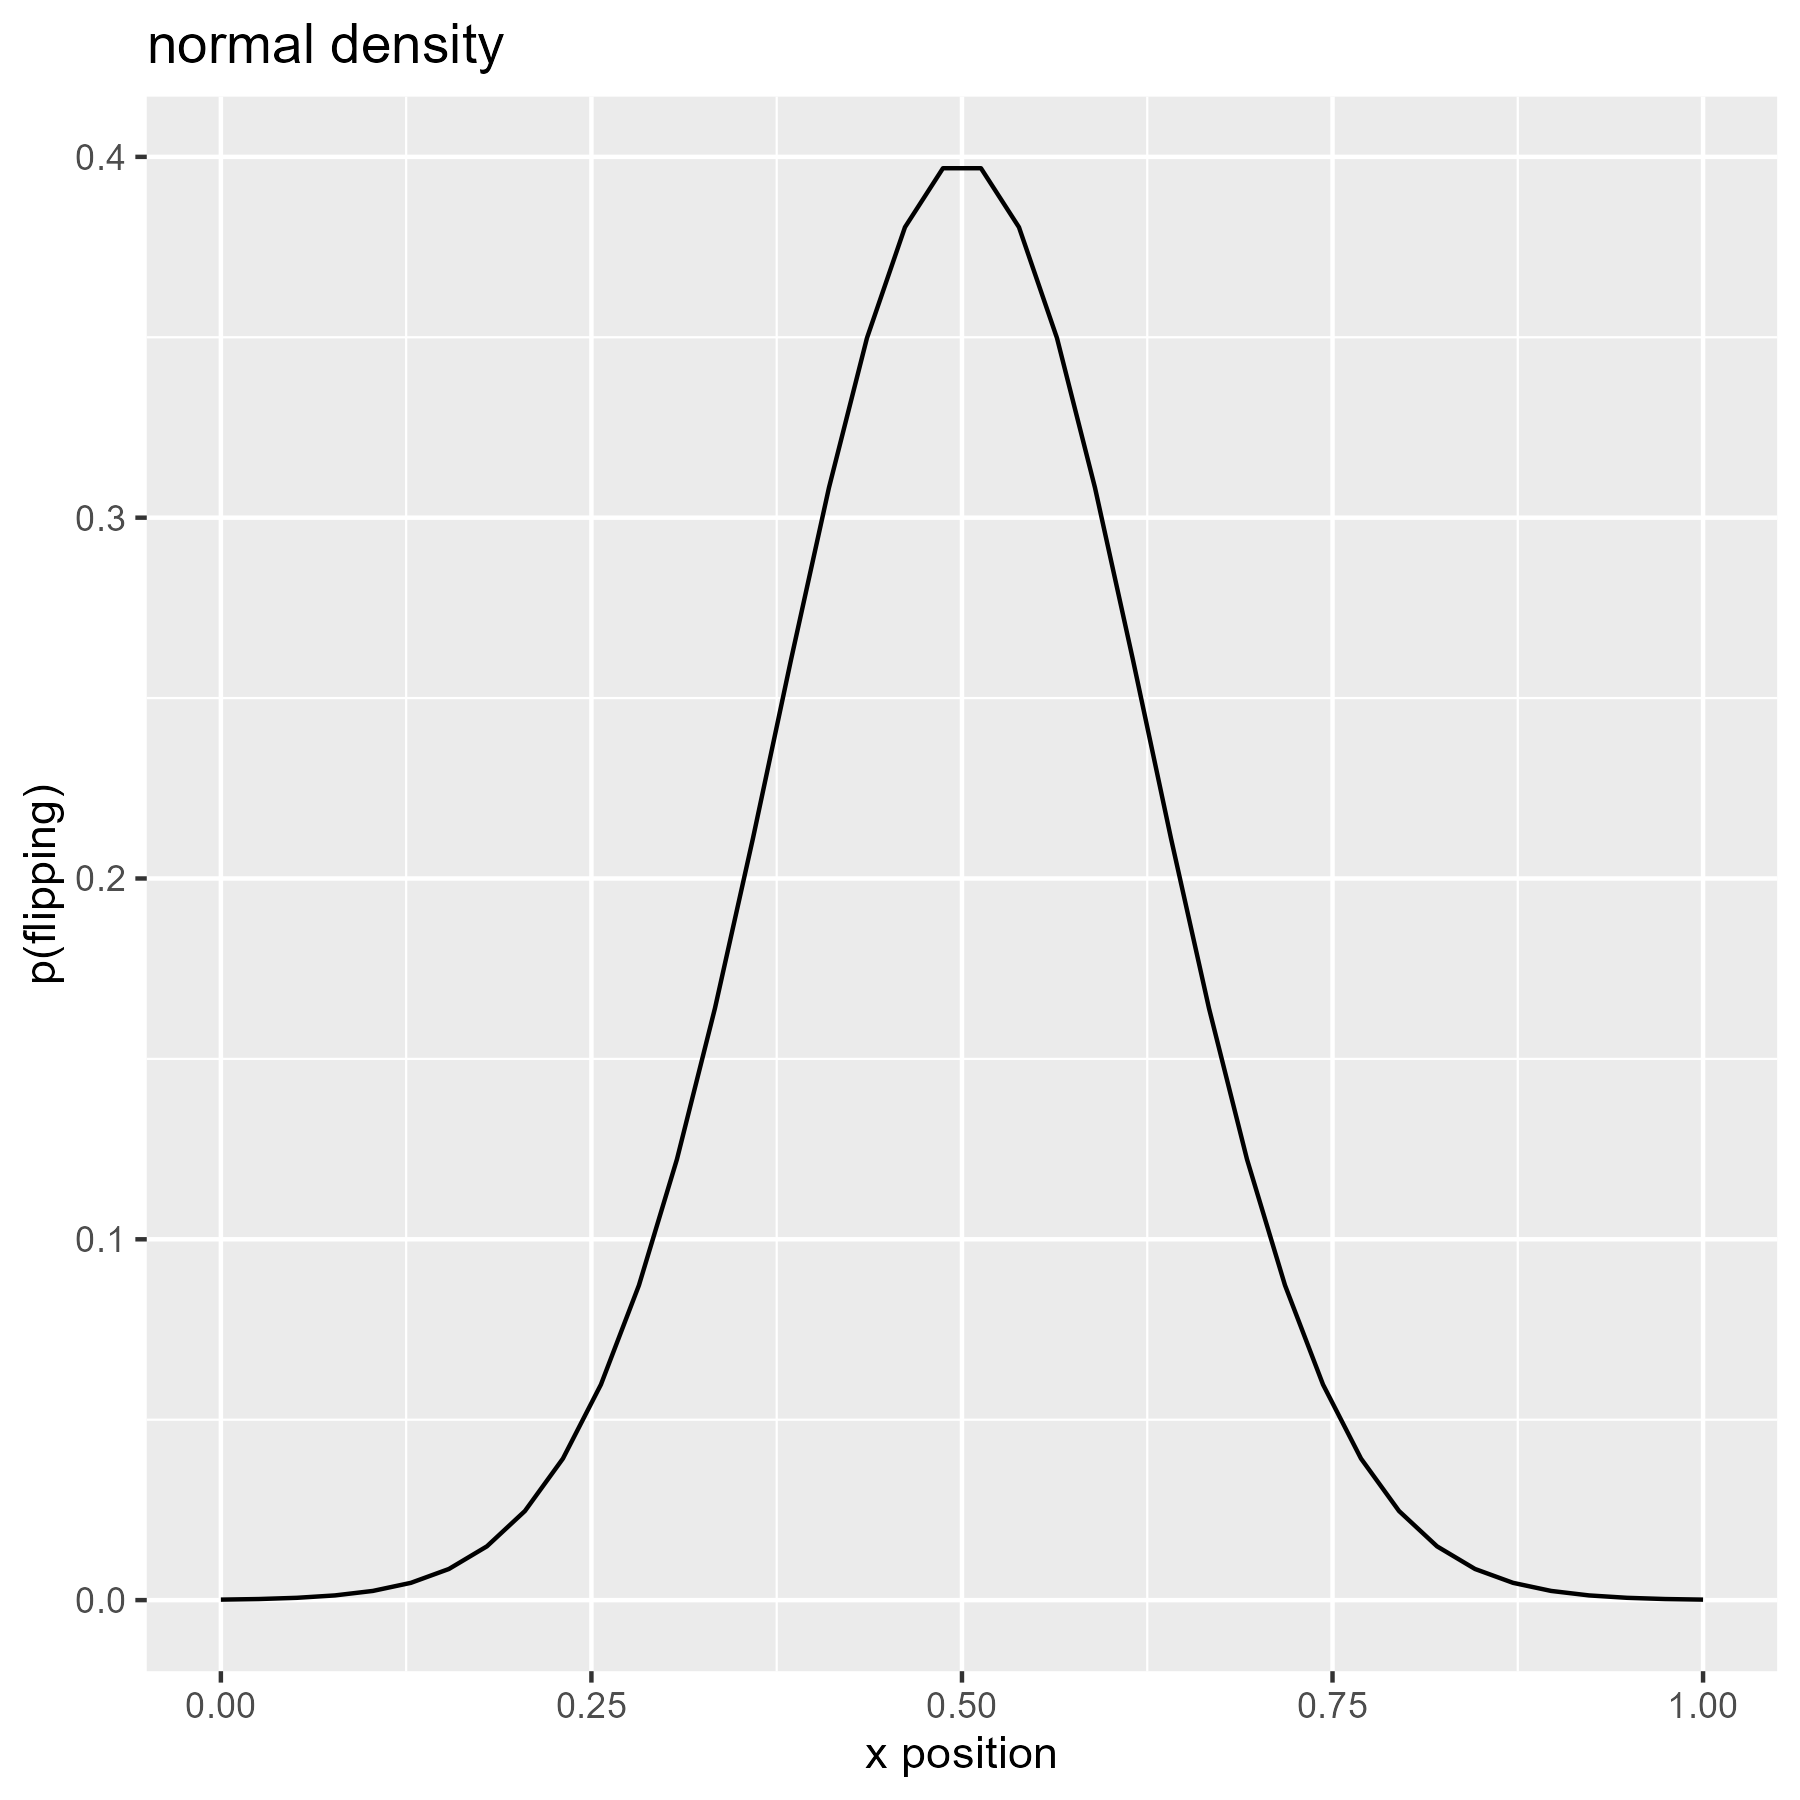 Density of the normal distribution